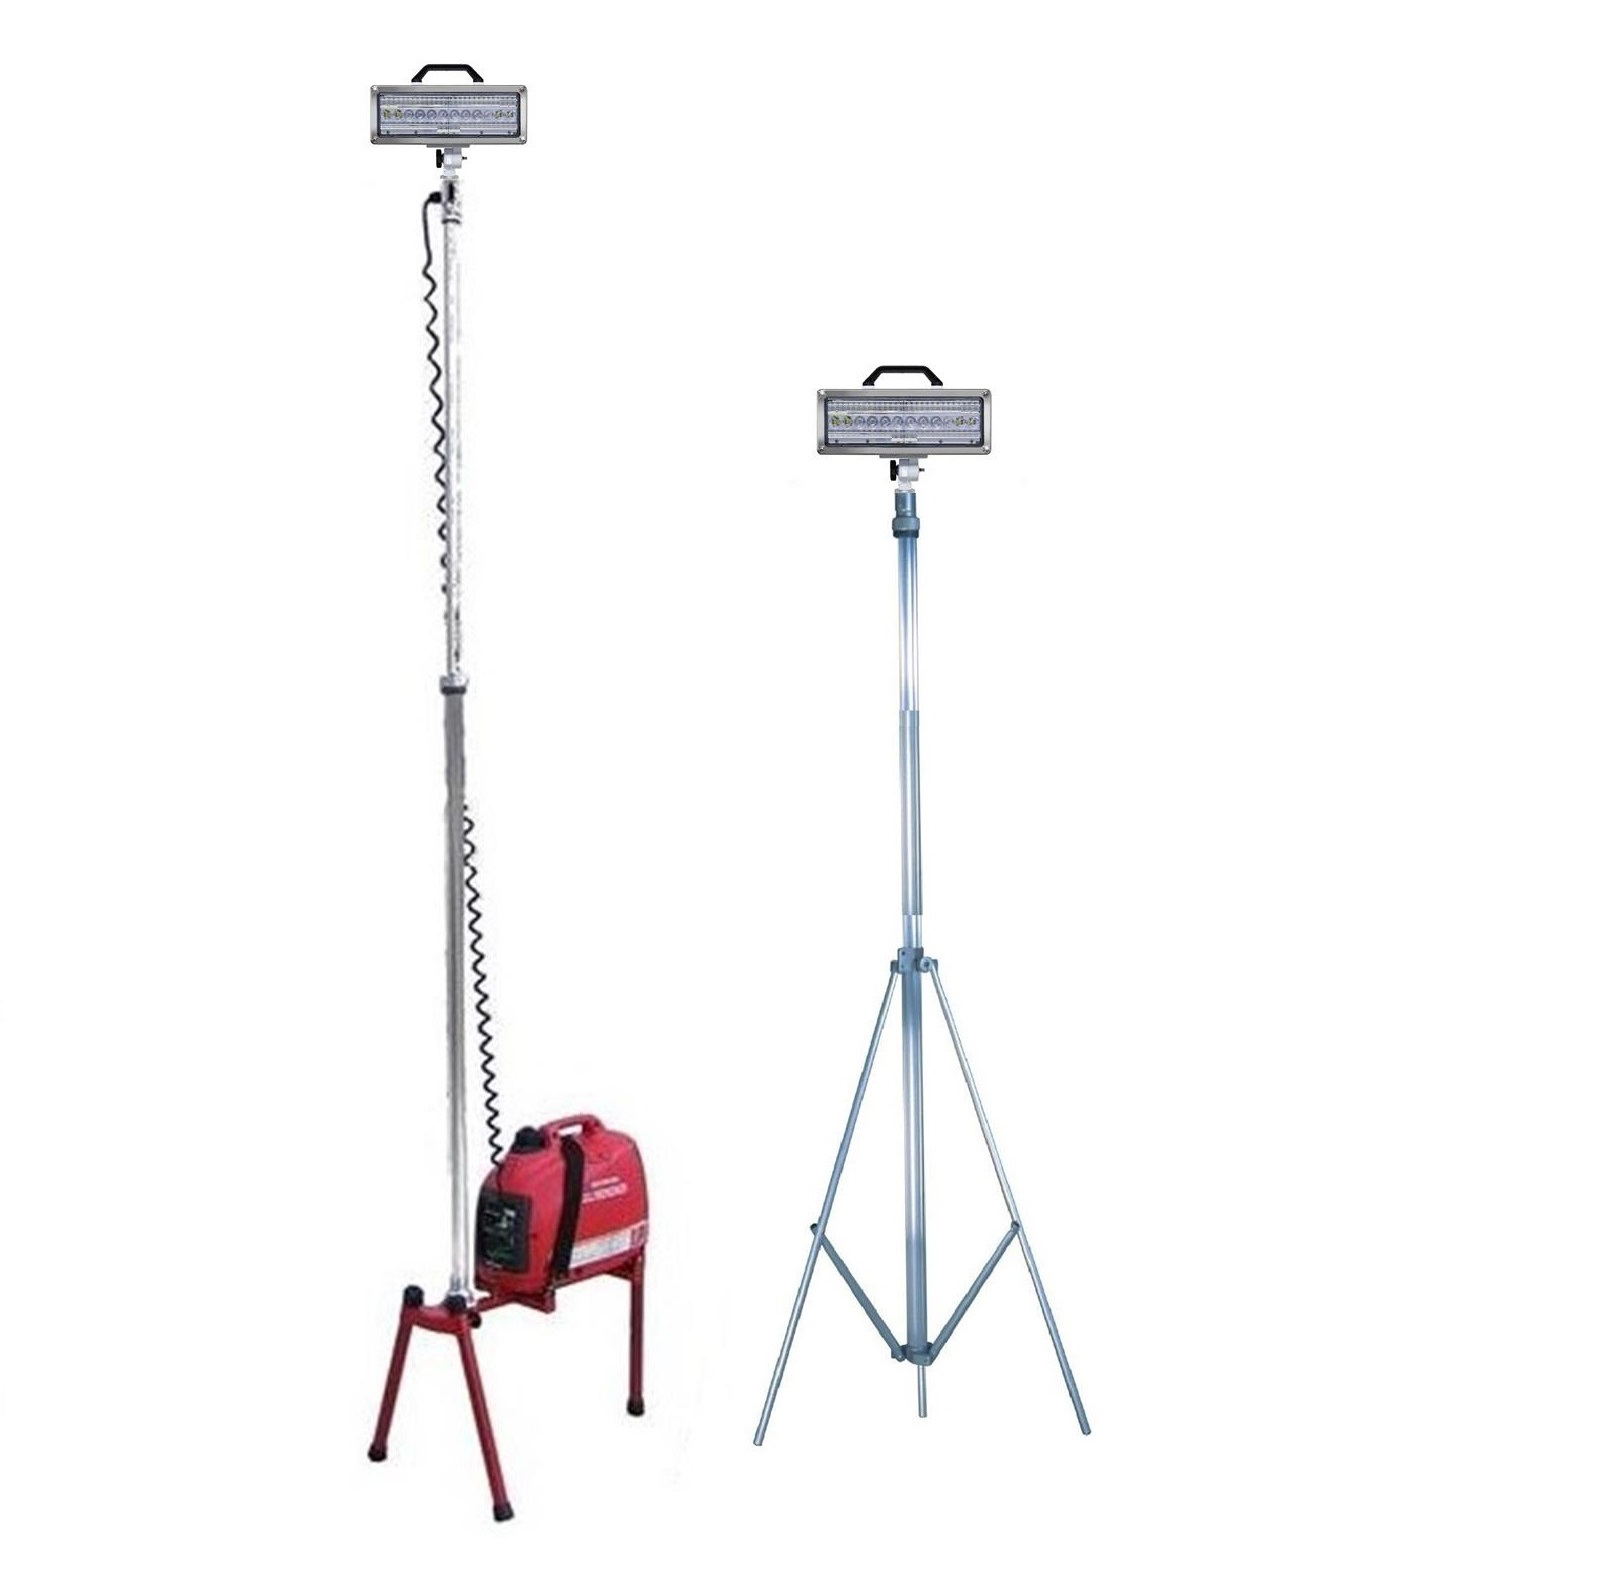 Frc Tripod Scene Light Available In Led And Halogen